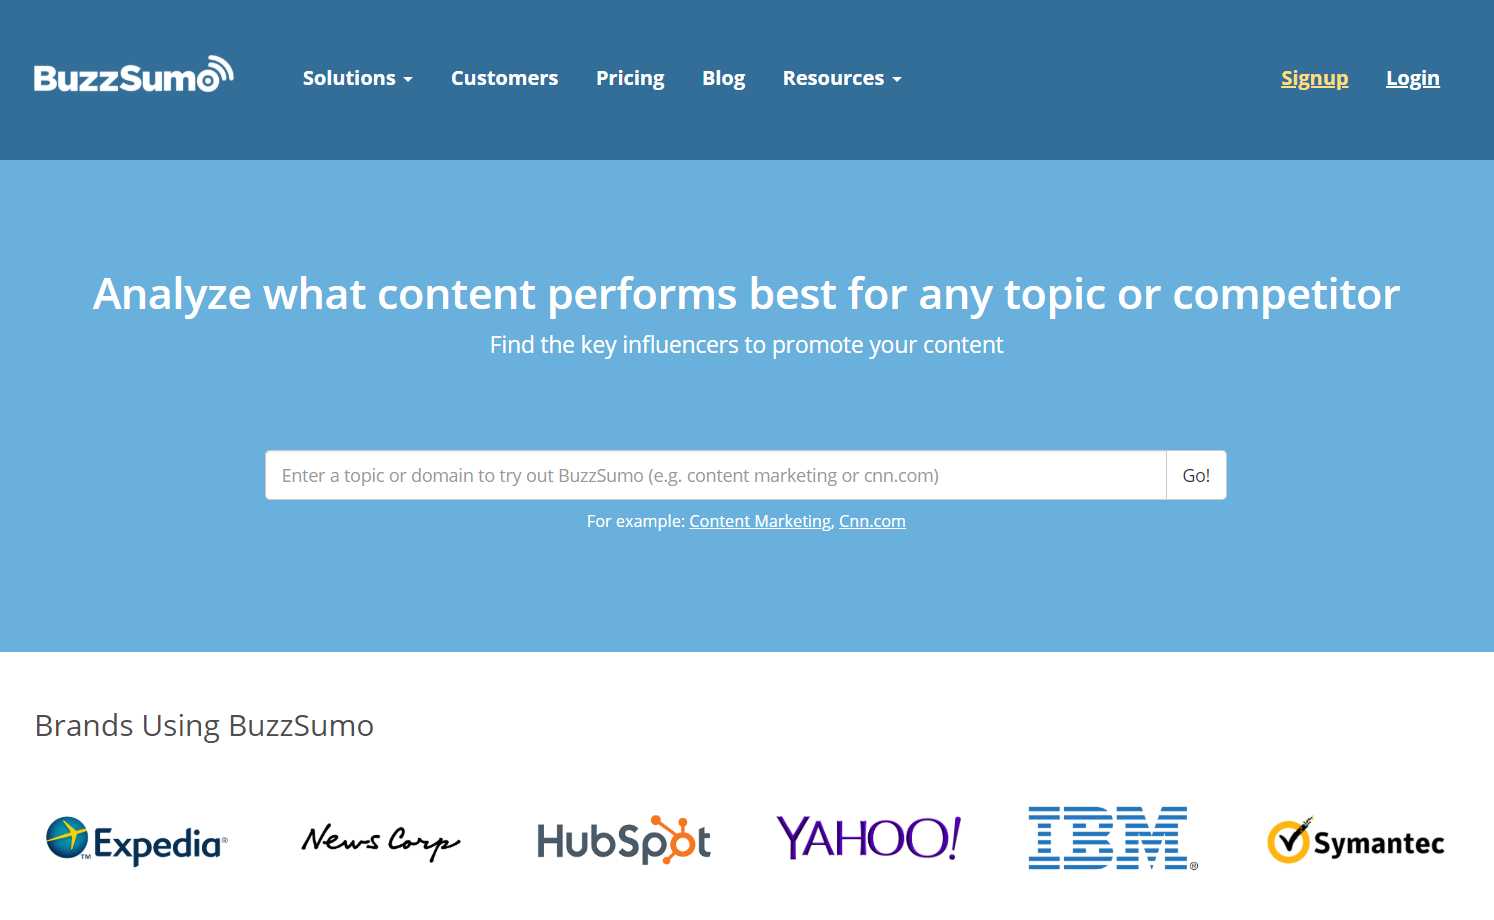 landing page of buzzsumo with features